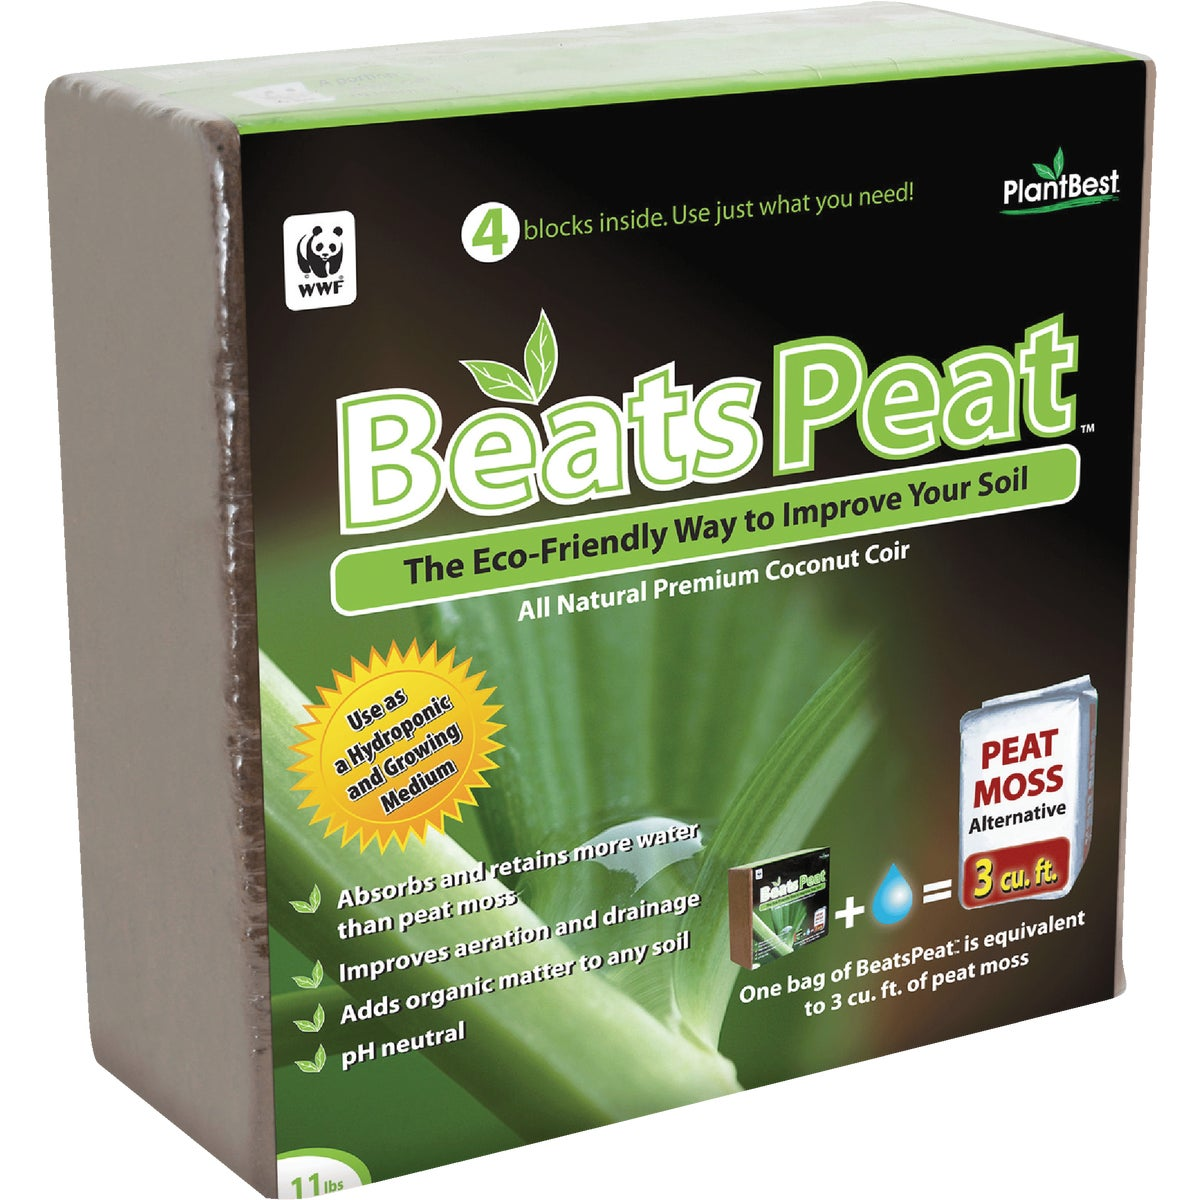 3 CU FT BEATS PEAT - RZP30410 by Myers Industries Inc